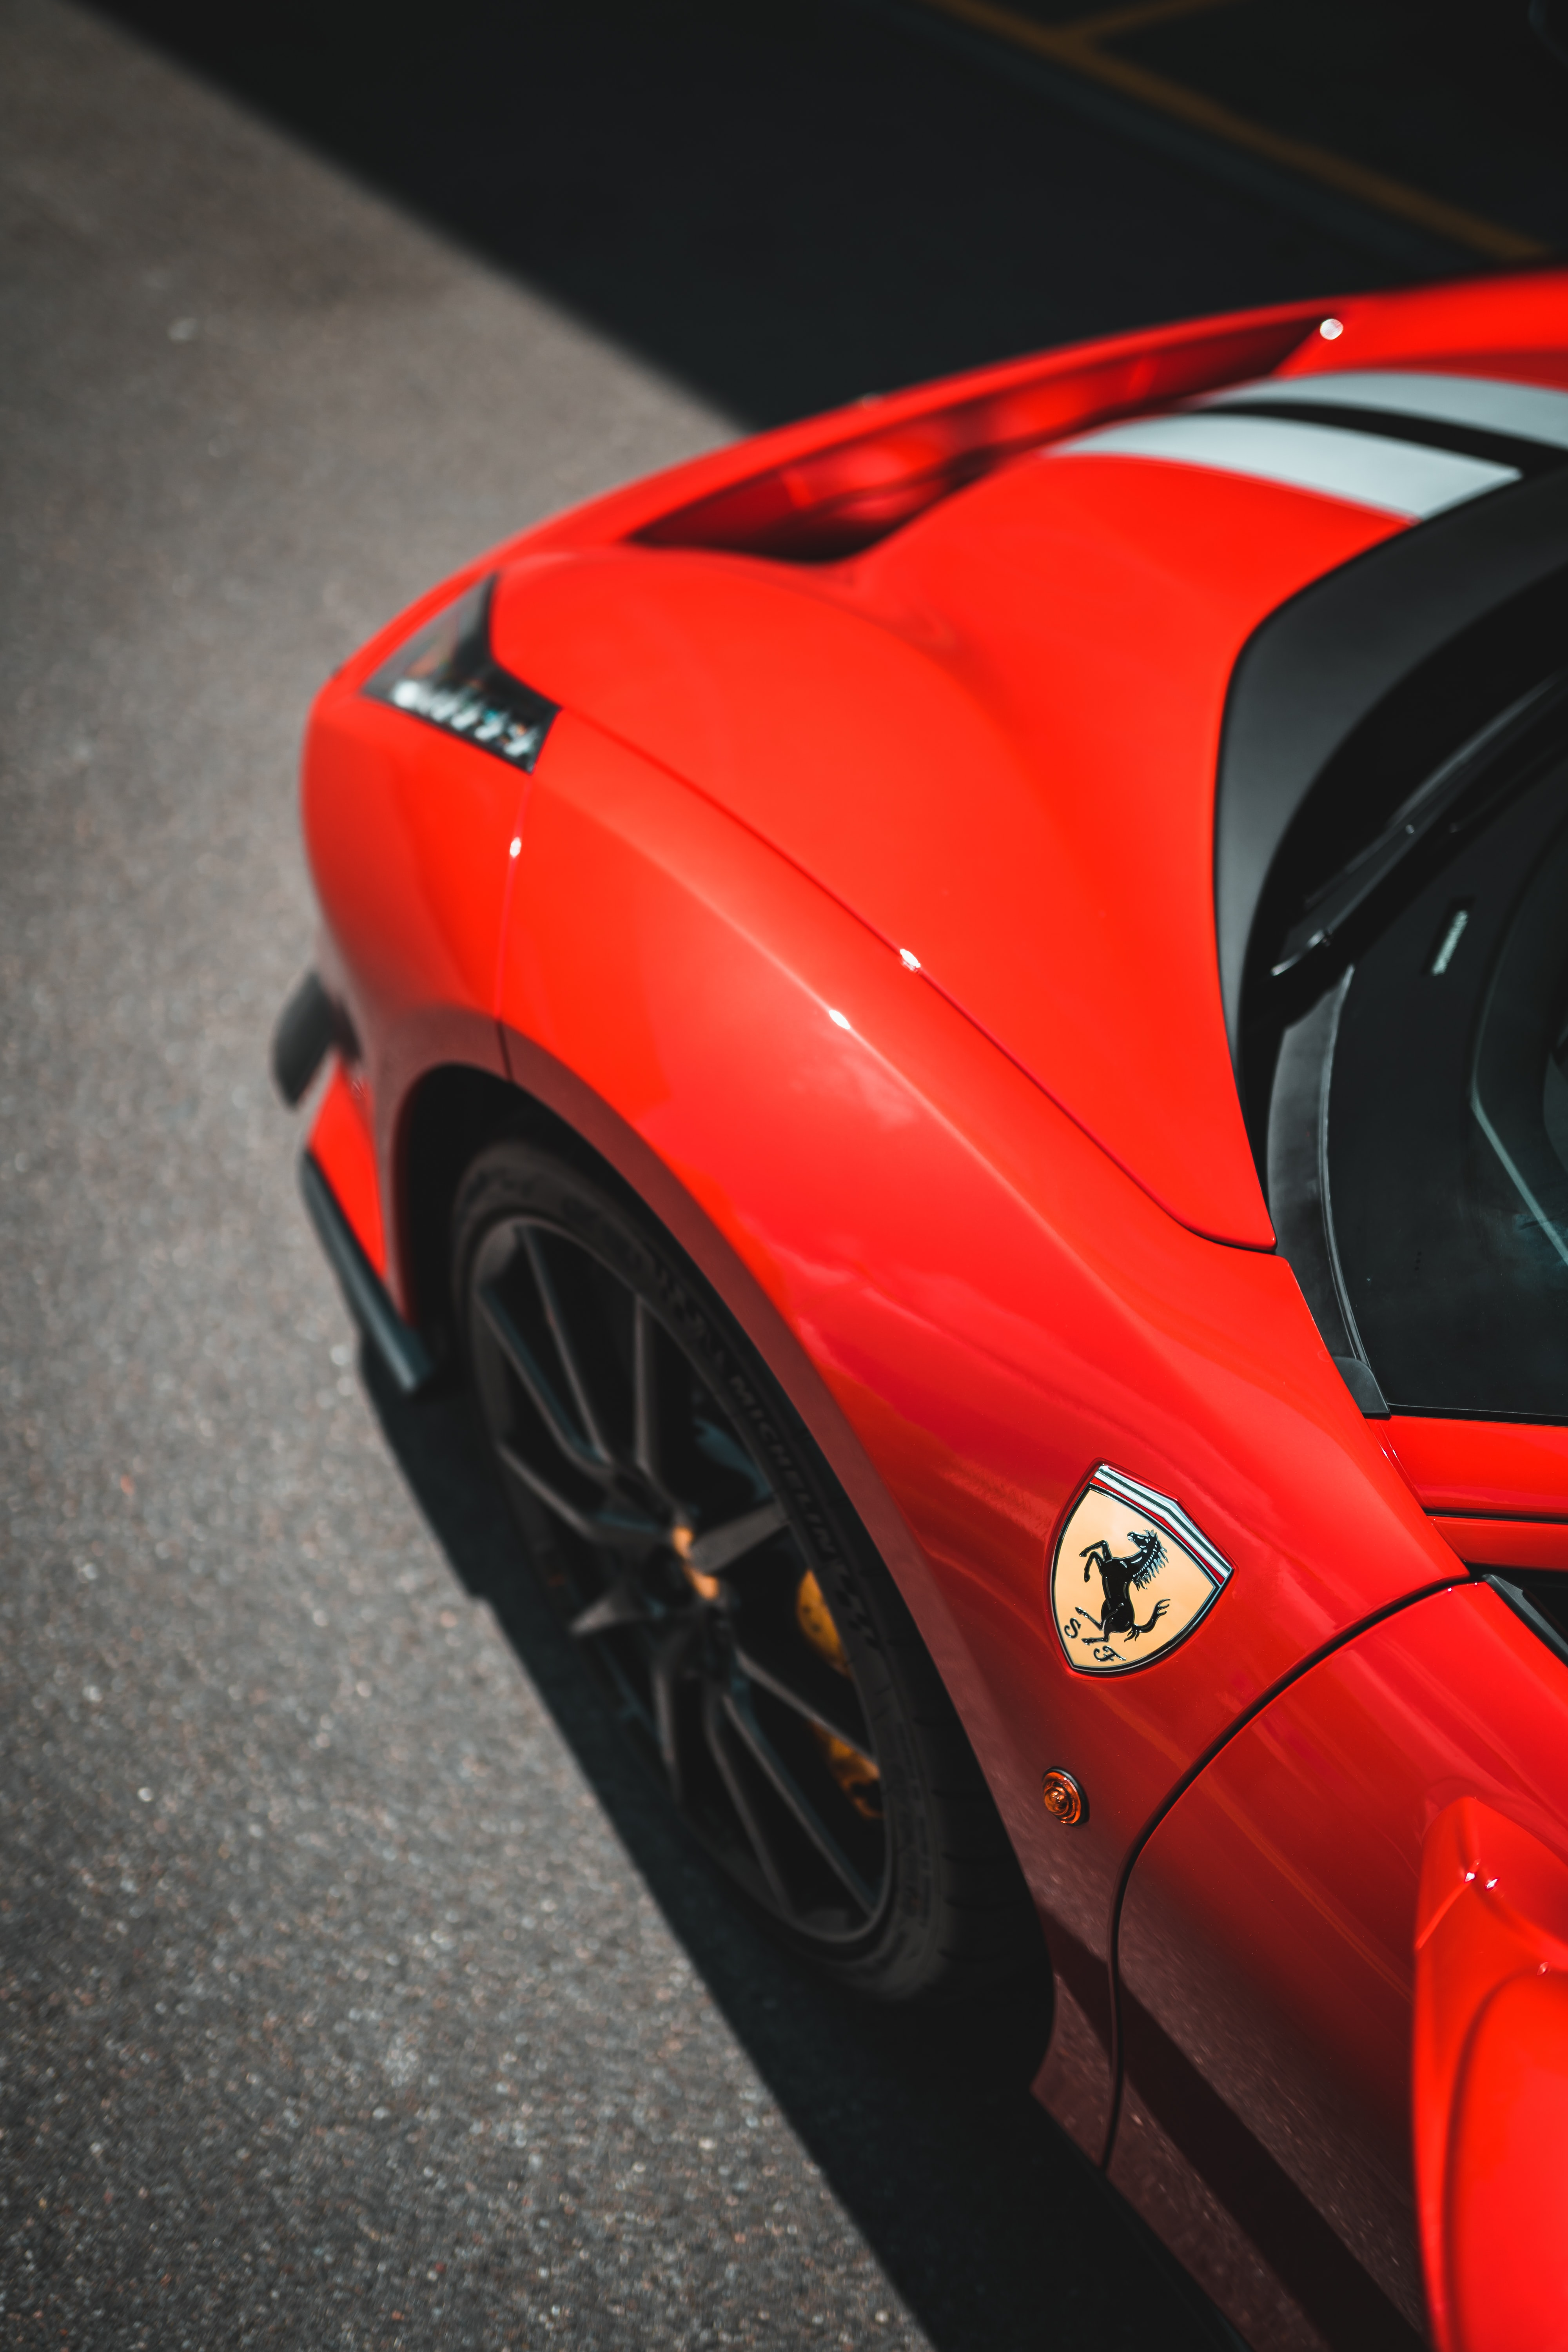 56280 download wallpaper Sports, Ferrari, Cars, Car, Sports Car screensavers and pictures for free